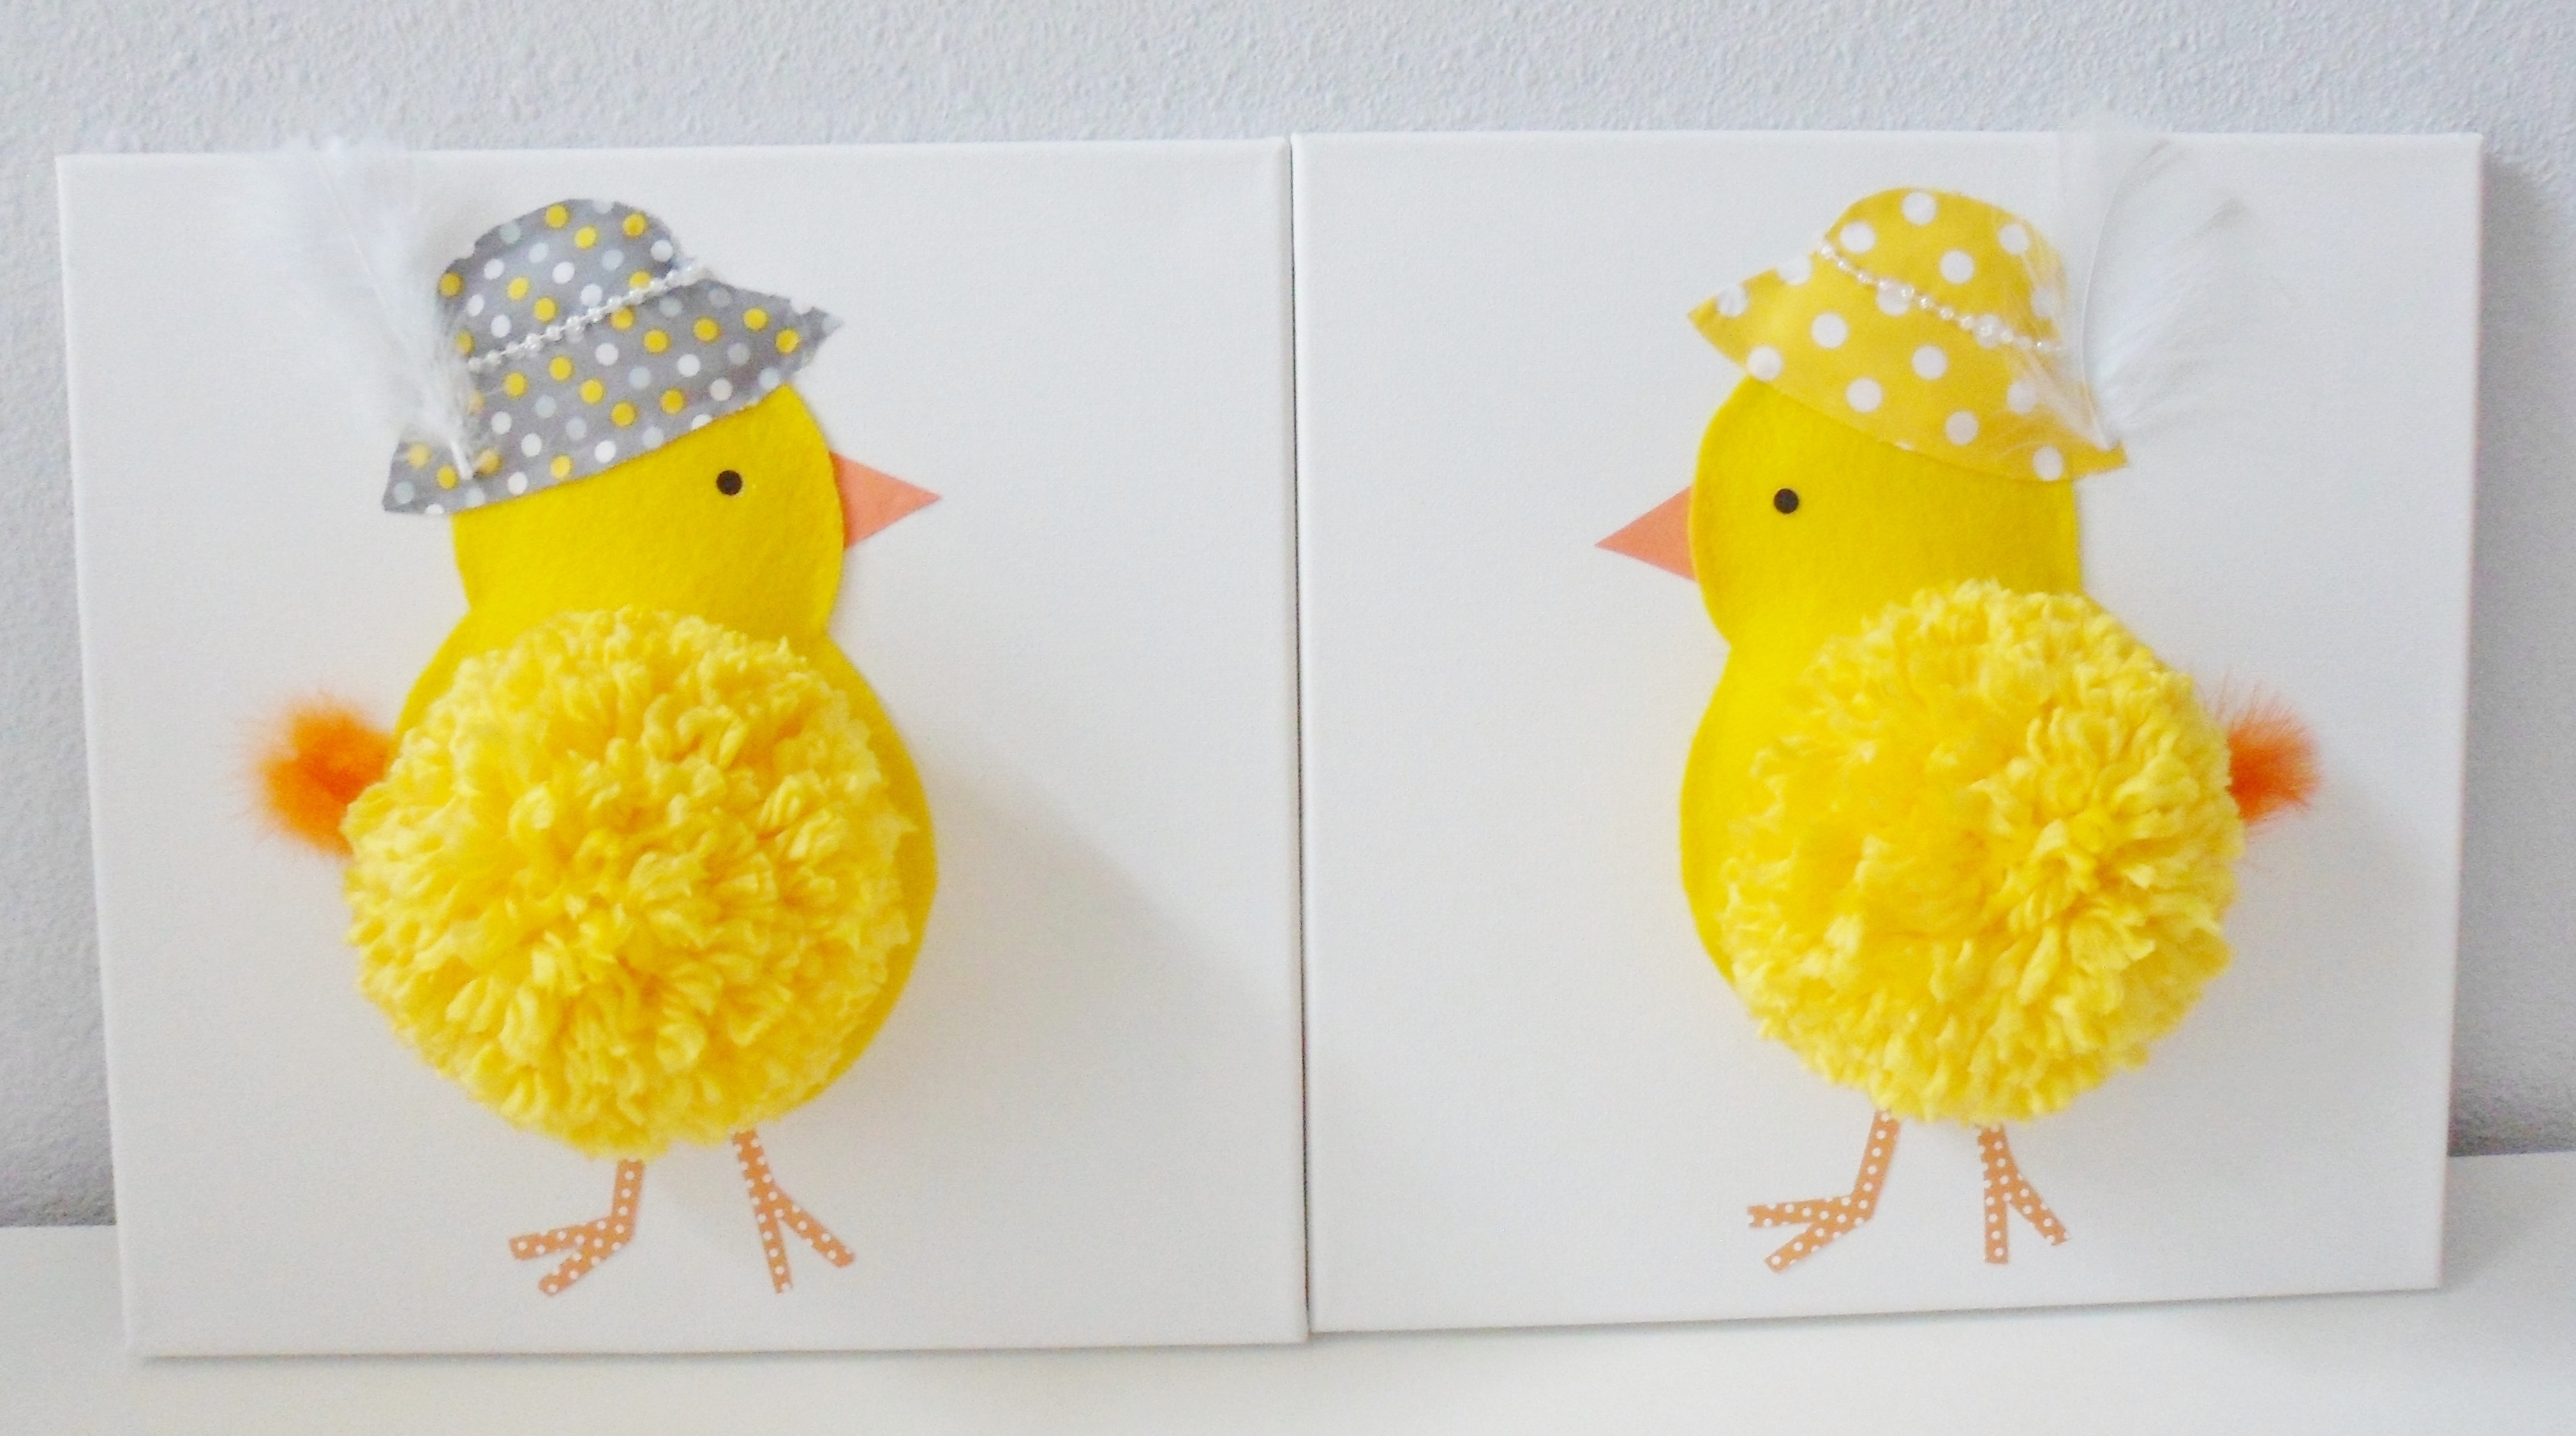 SALE! Pompom Little Chicks Canvas for Nursery,3D by Pomponos on Zibbet